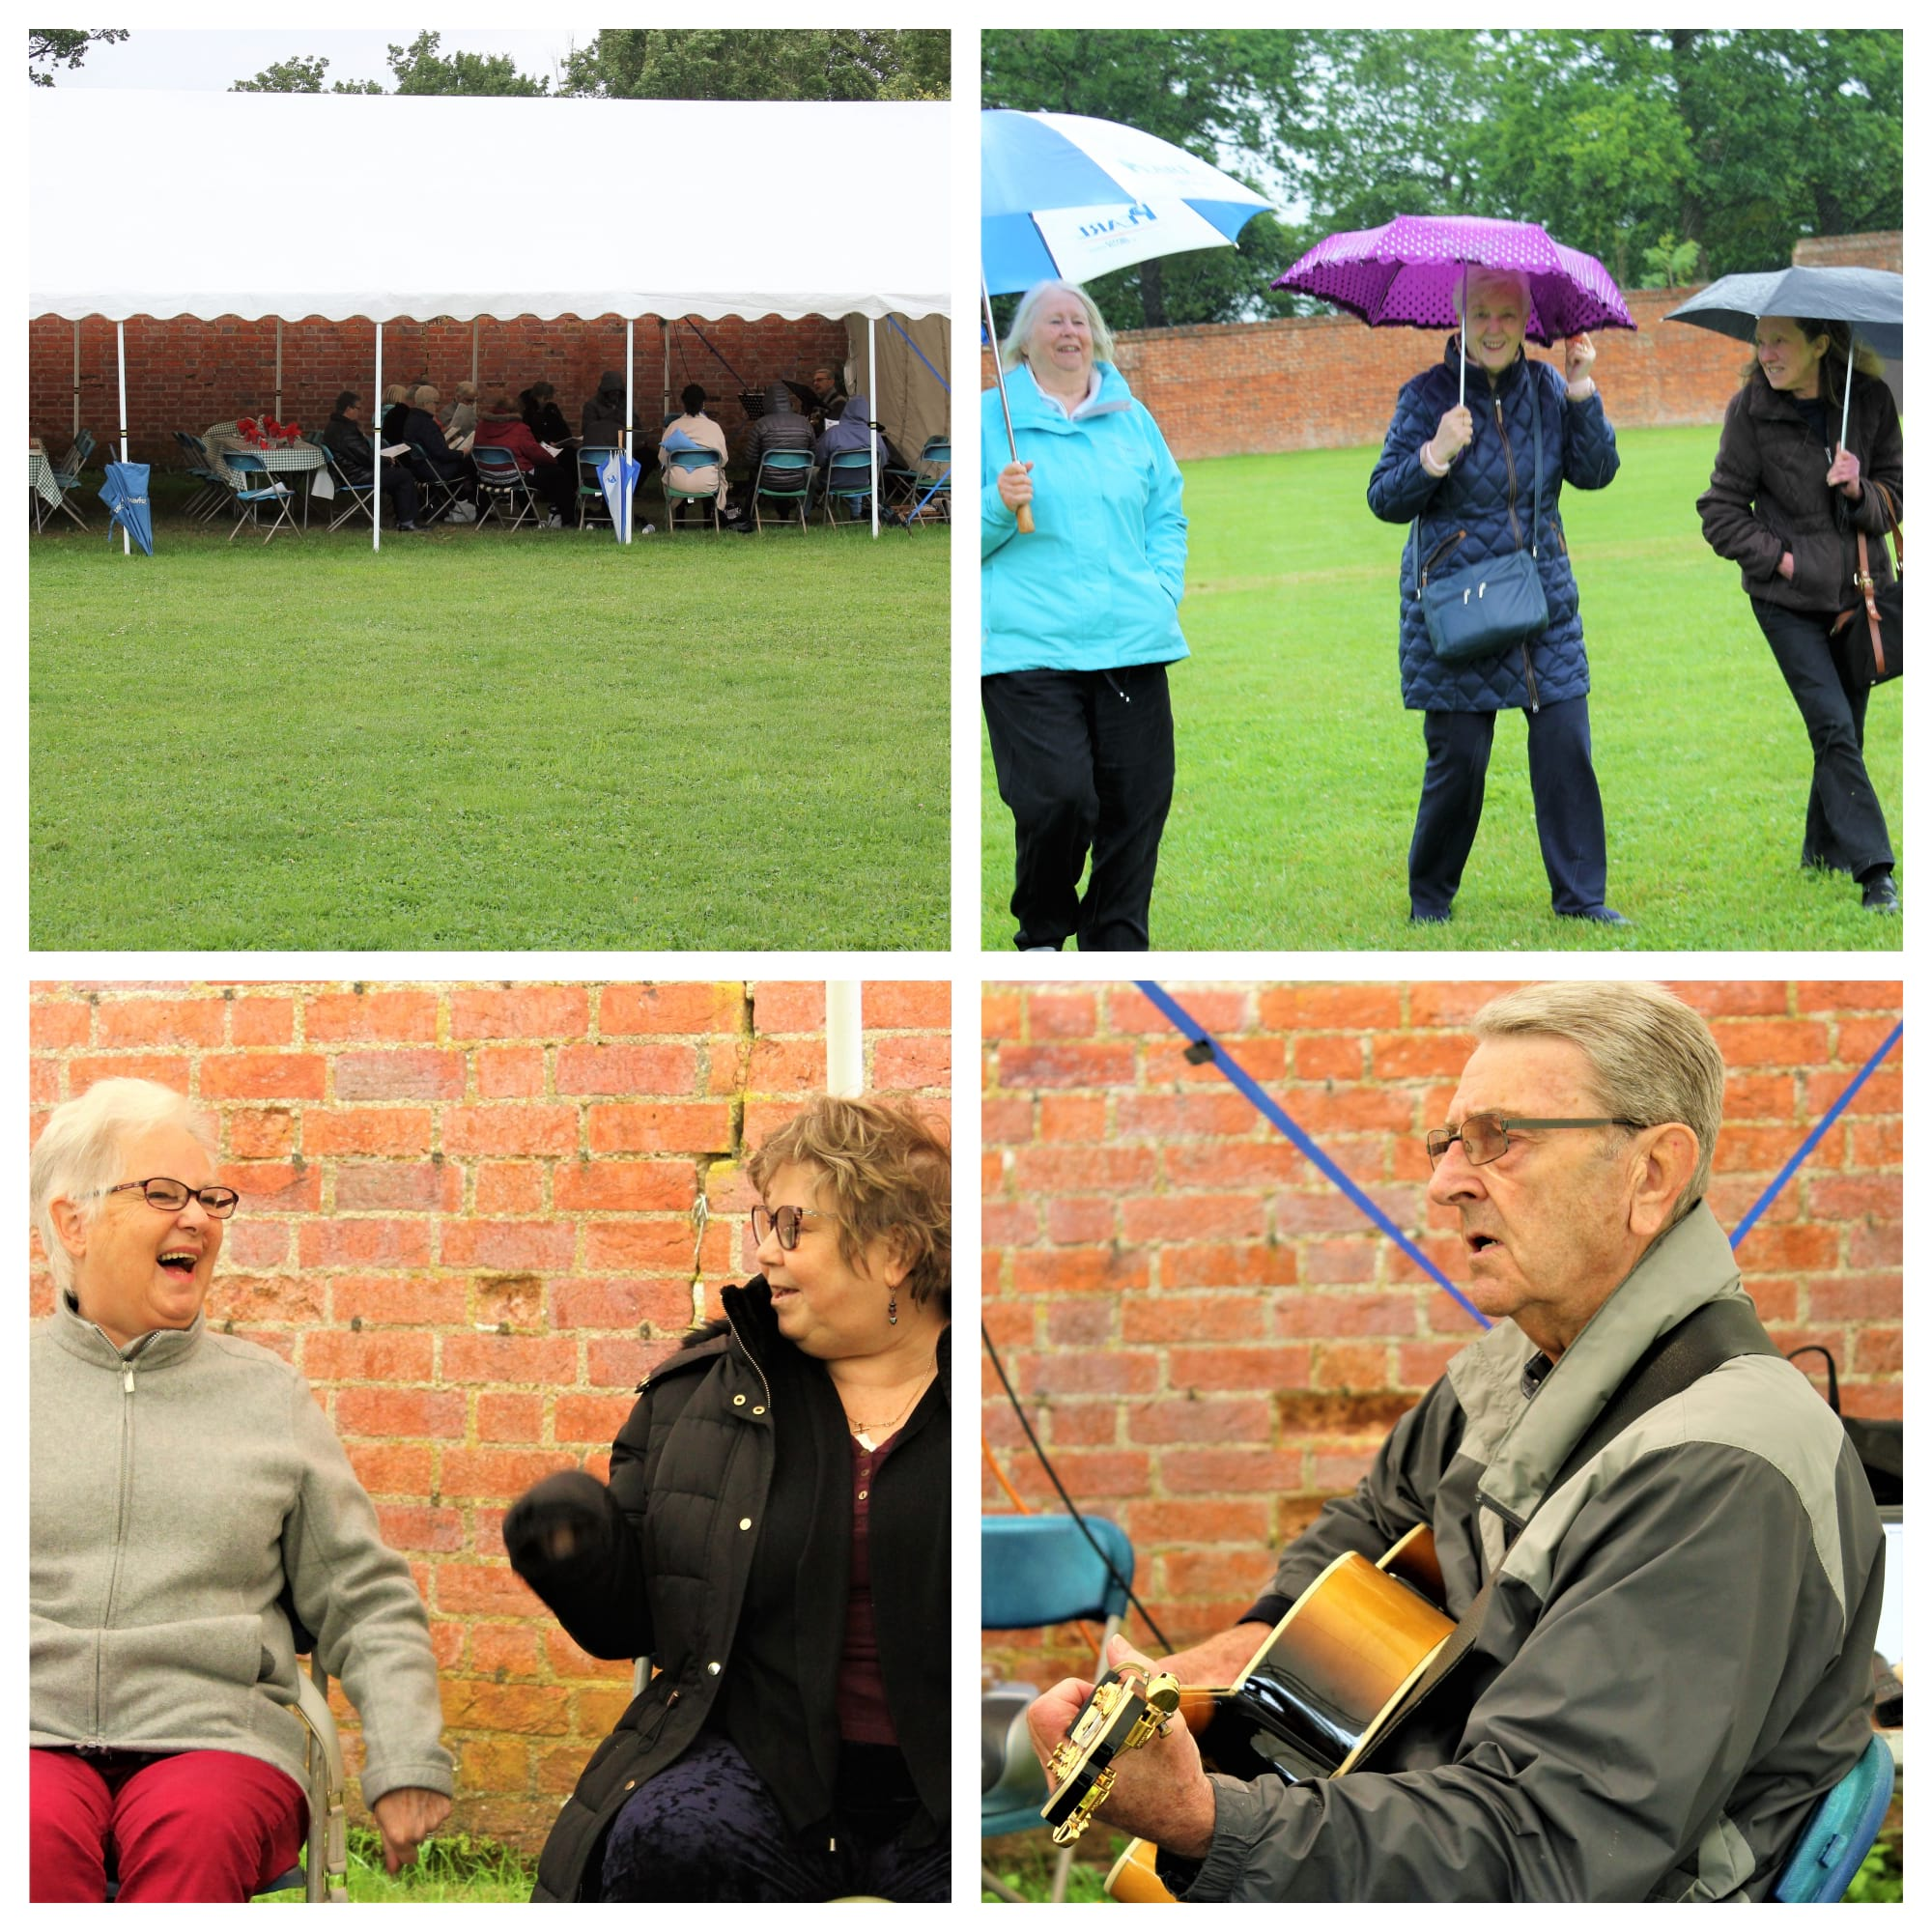 A home group had a great day out at Otford Manor despite the weather.